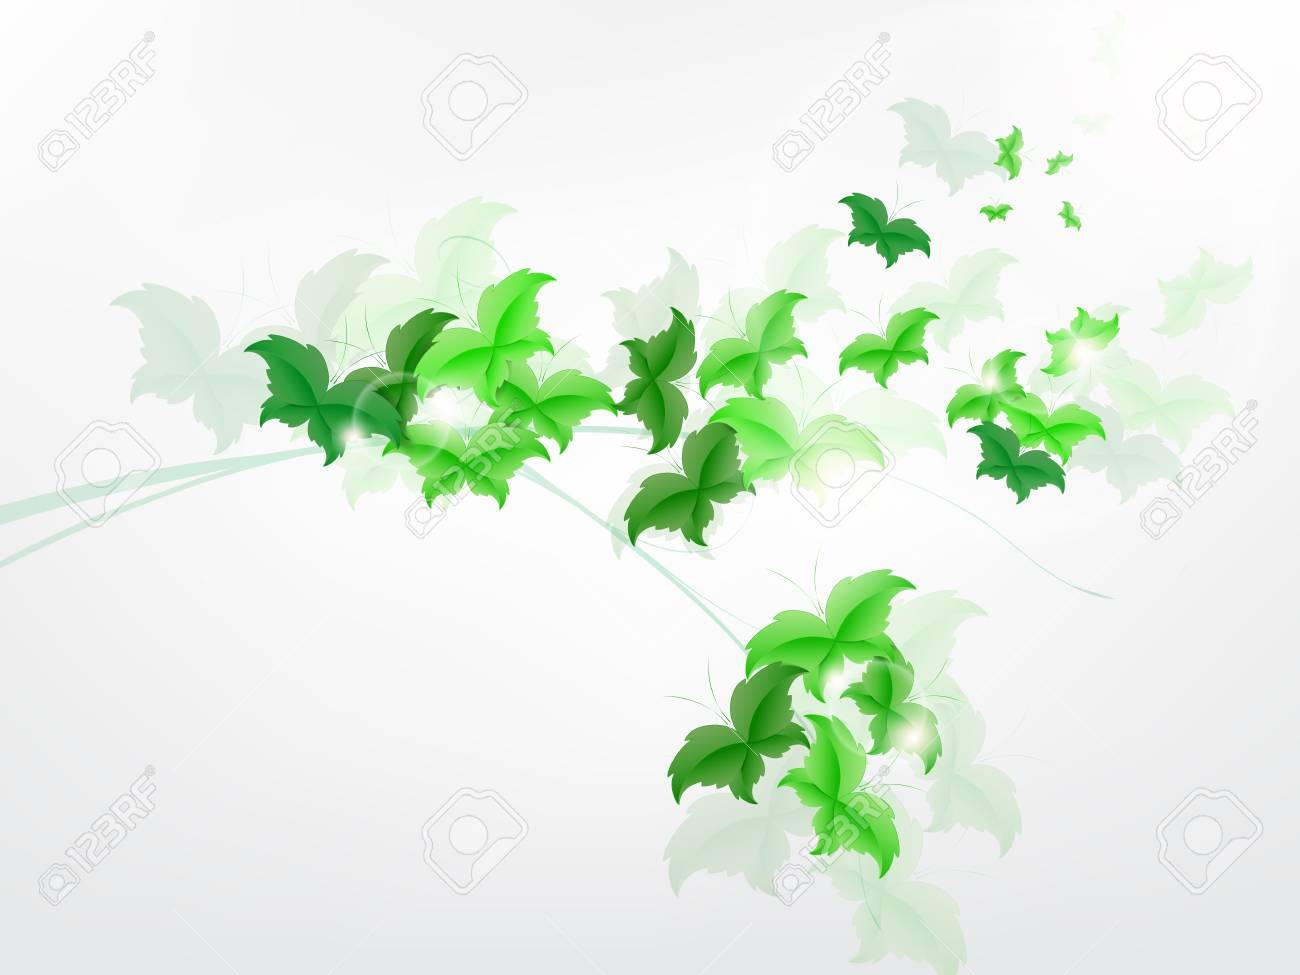 Environmental Background with green leaf butterflies on a light green background. Stock Vector - 17965686